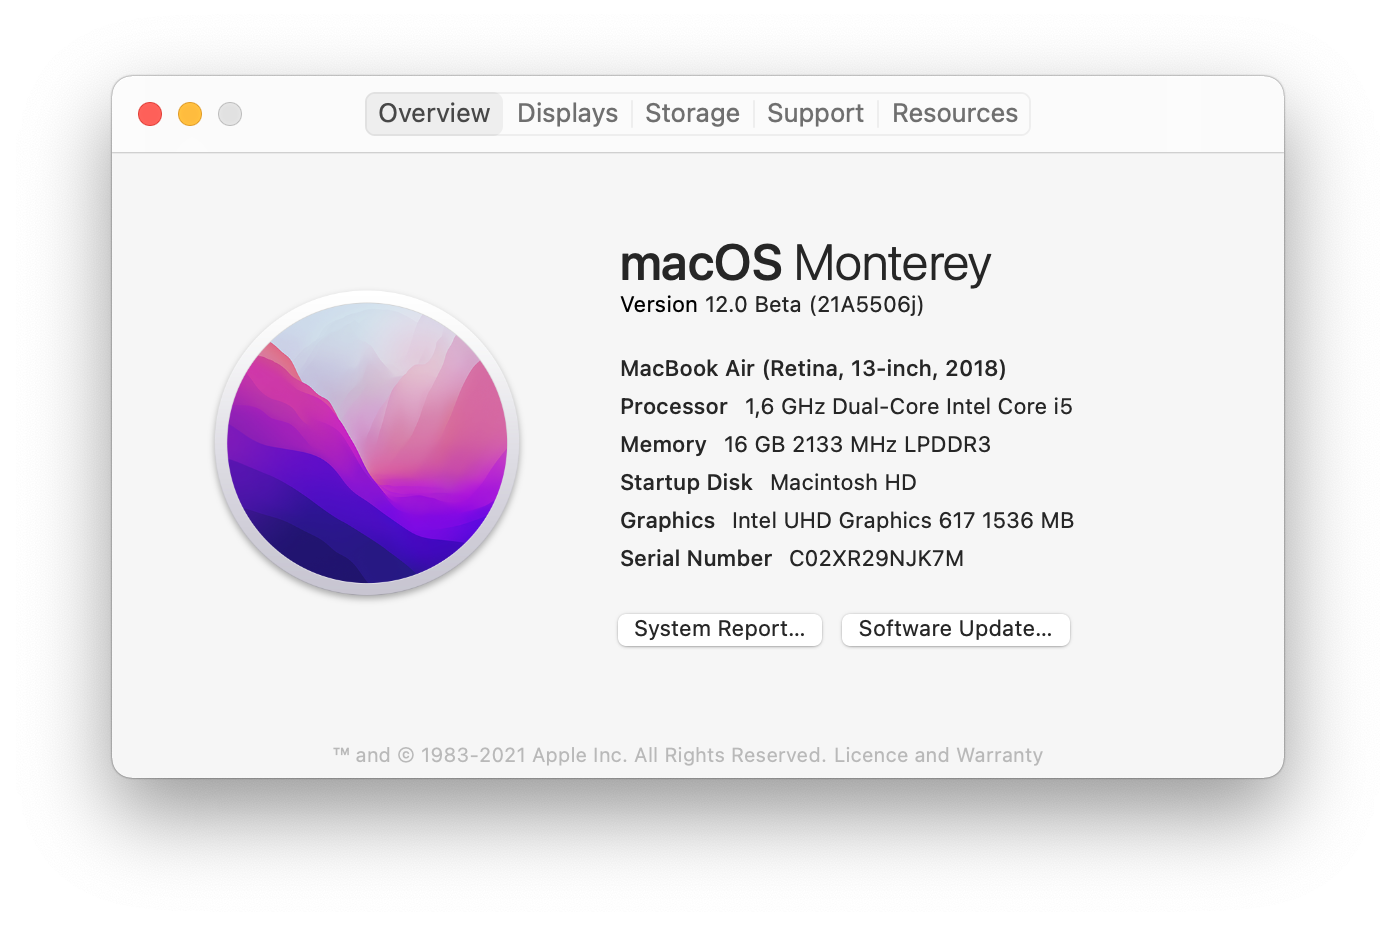 About This Mac > Software Update